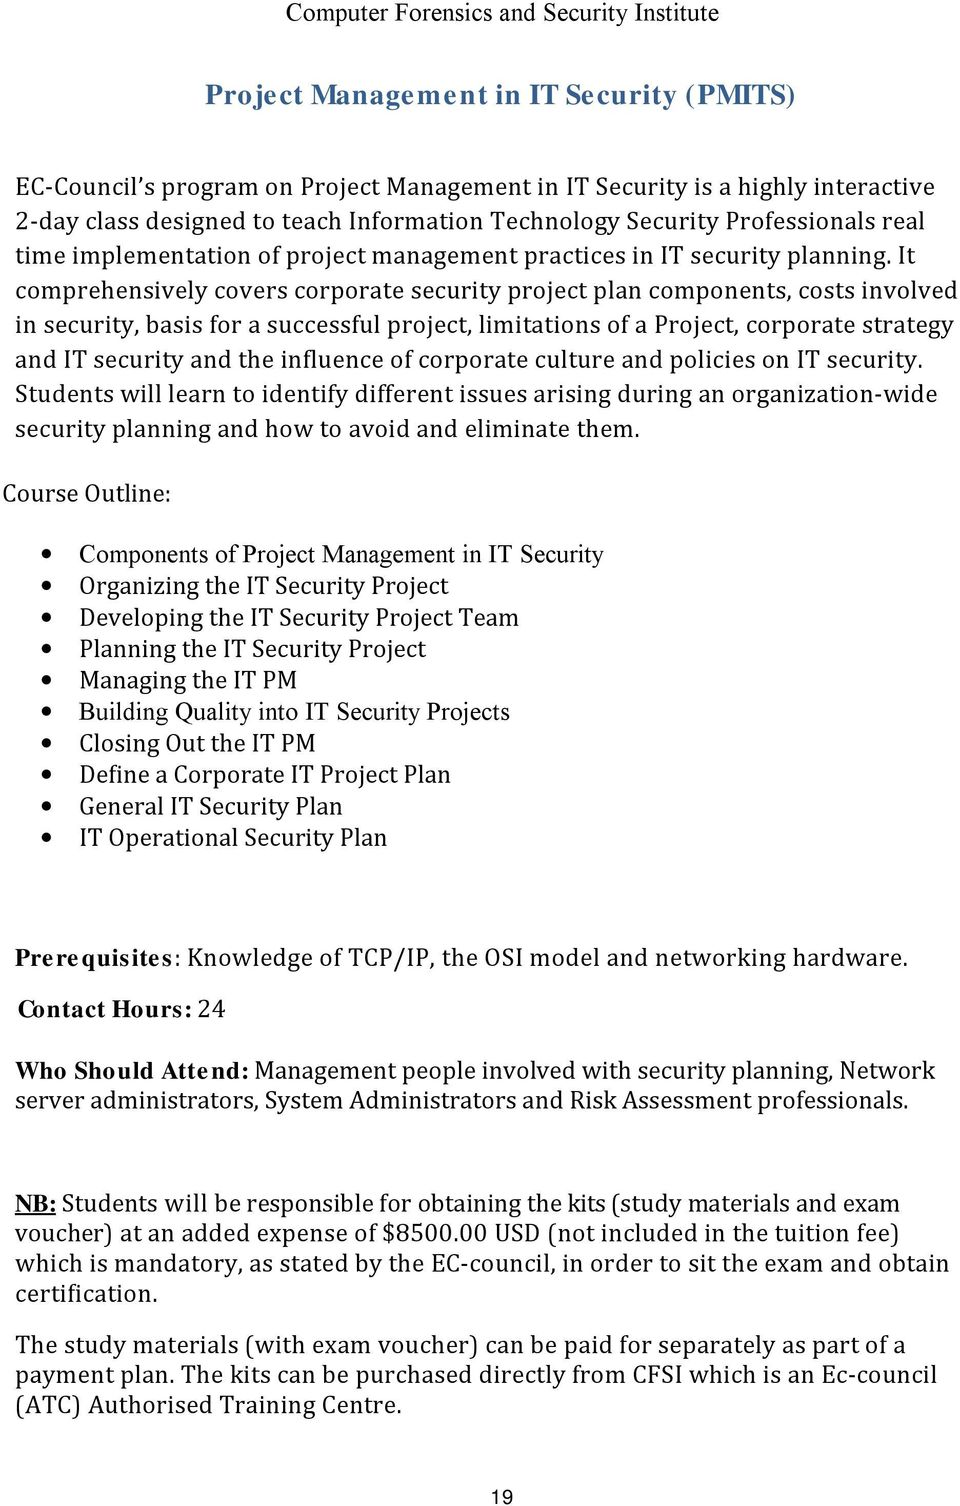 It comprehensively covers corporate security project plan components, costs involved in security, basis for a successful project, limitations of a Project, corporate strategy and IT security and the